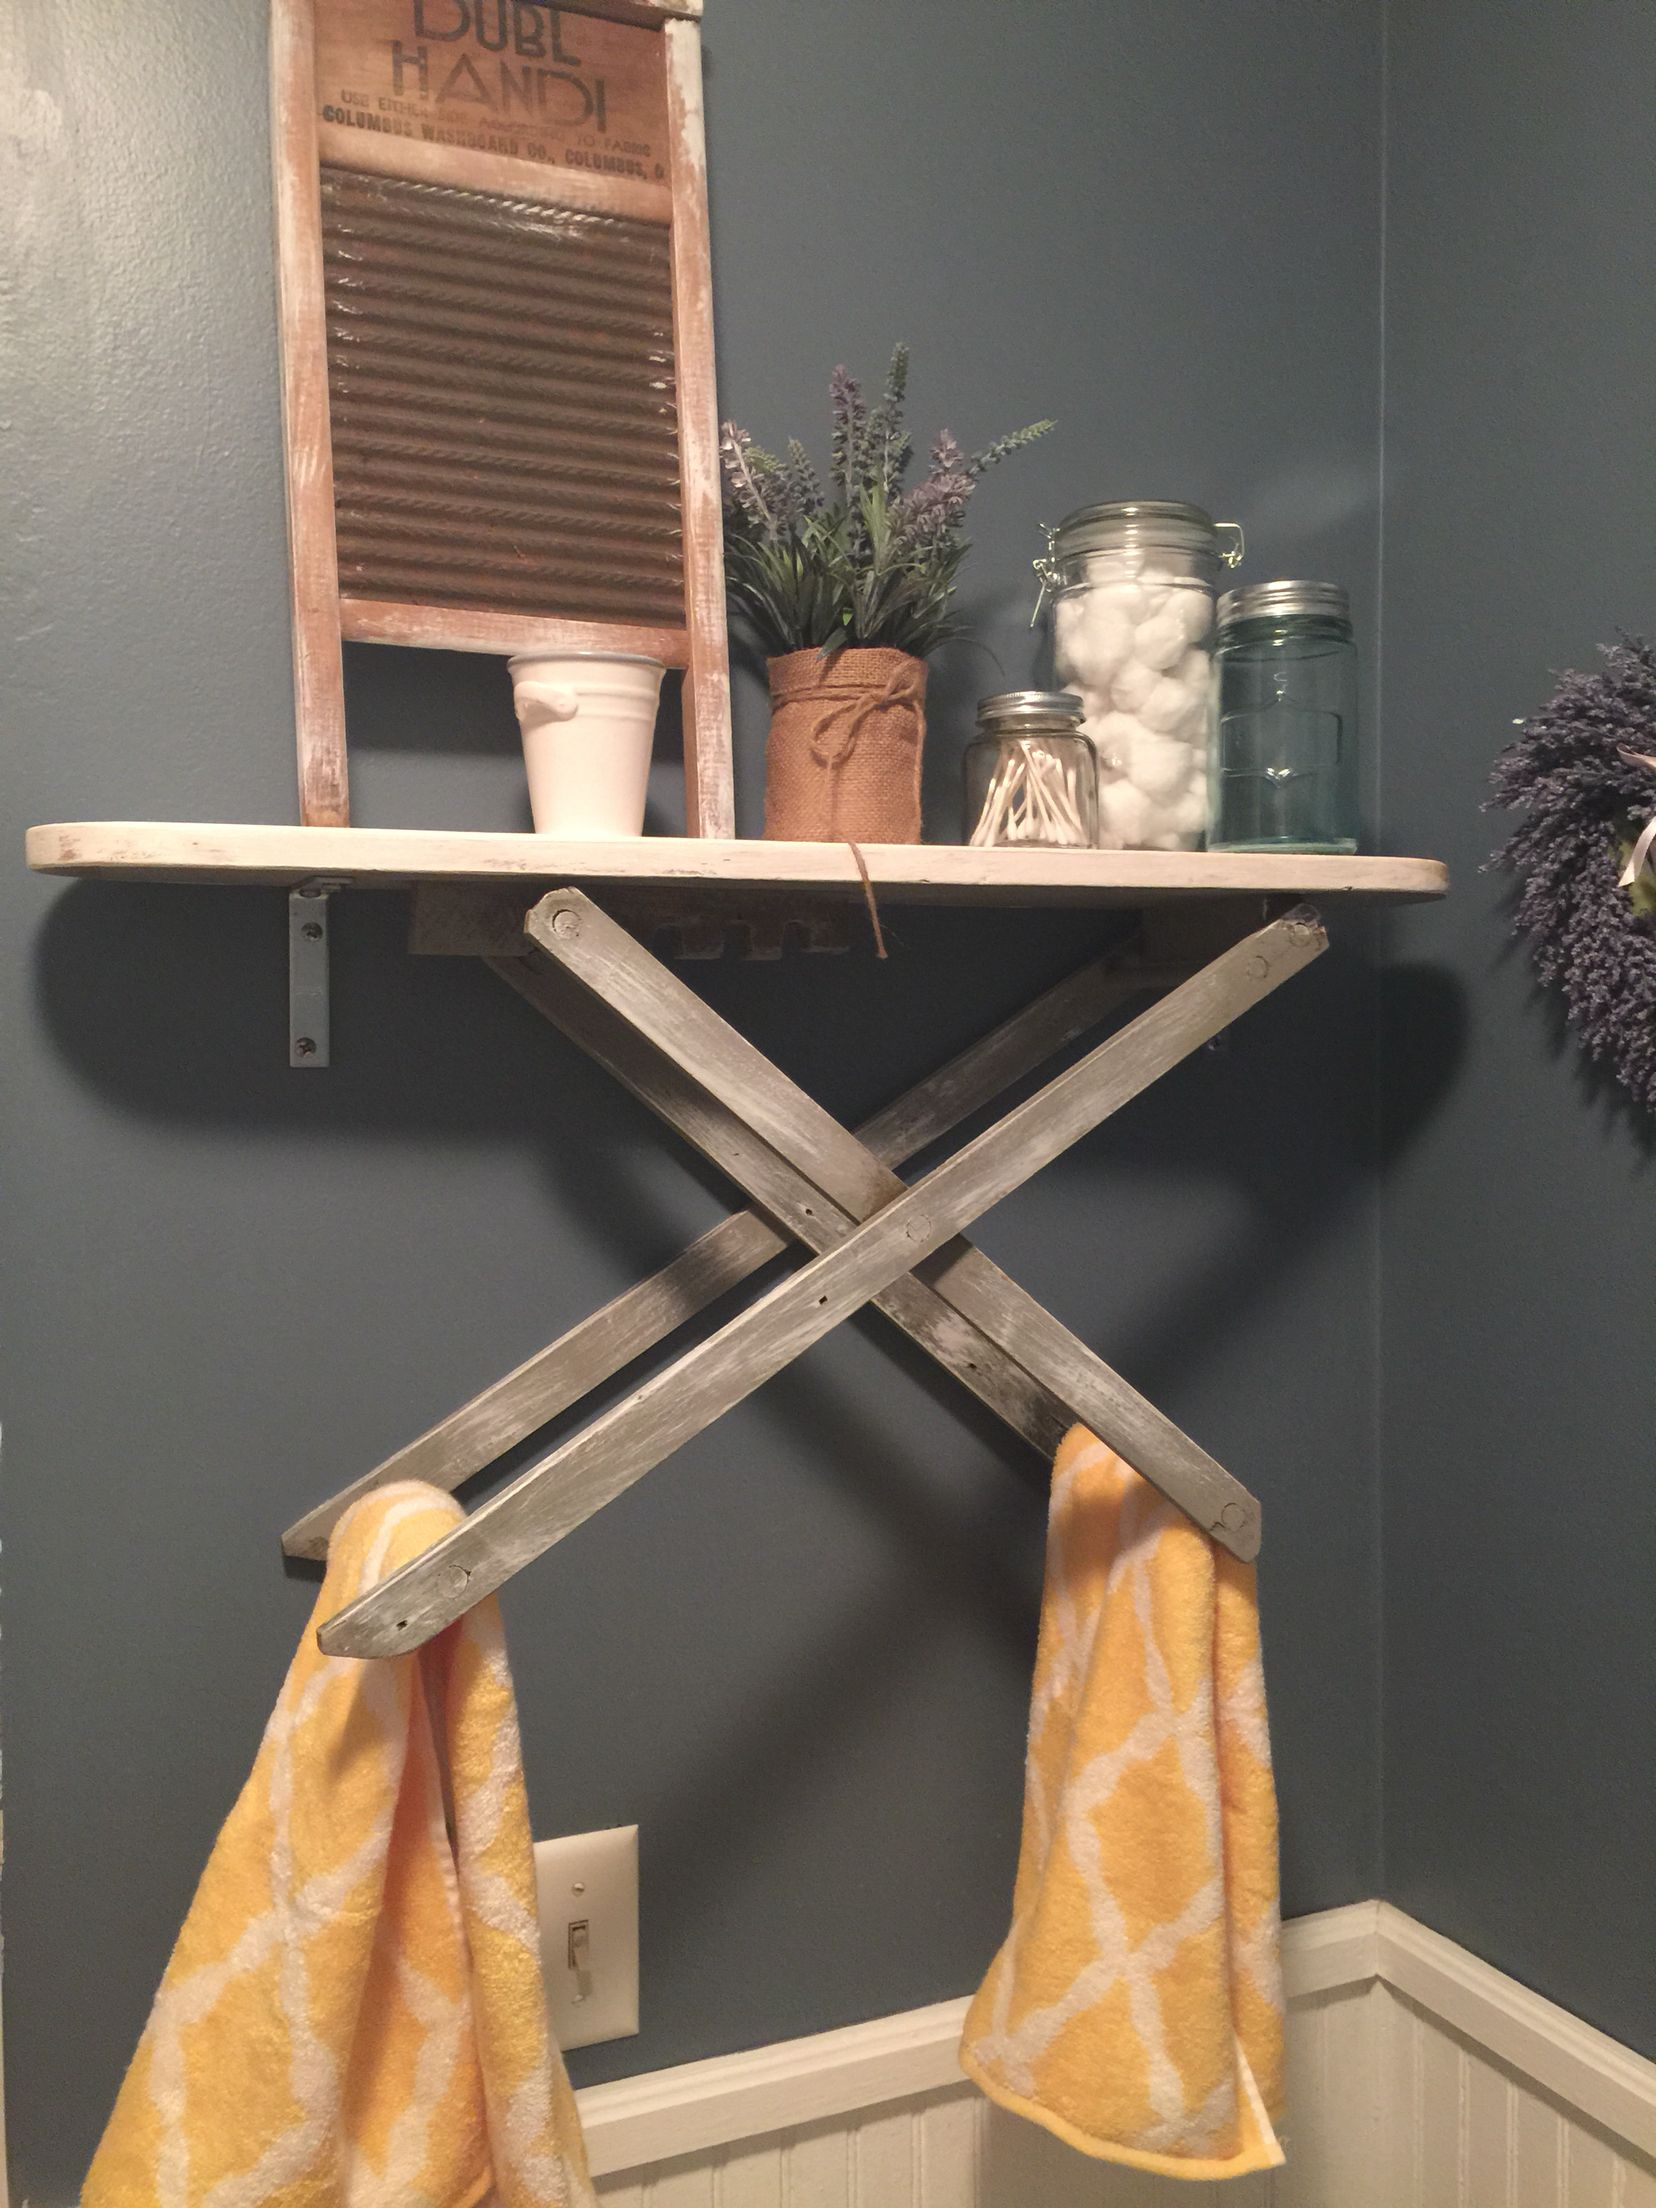 Repurposed Vintage Ironing Board Into Bathroom Towel Rack